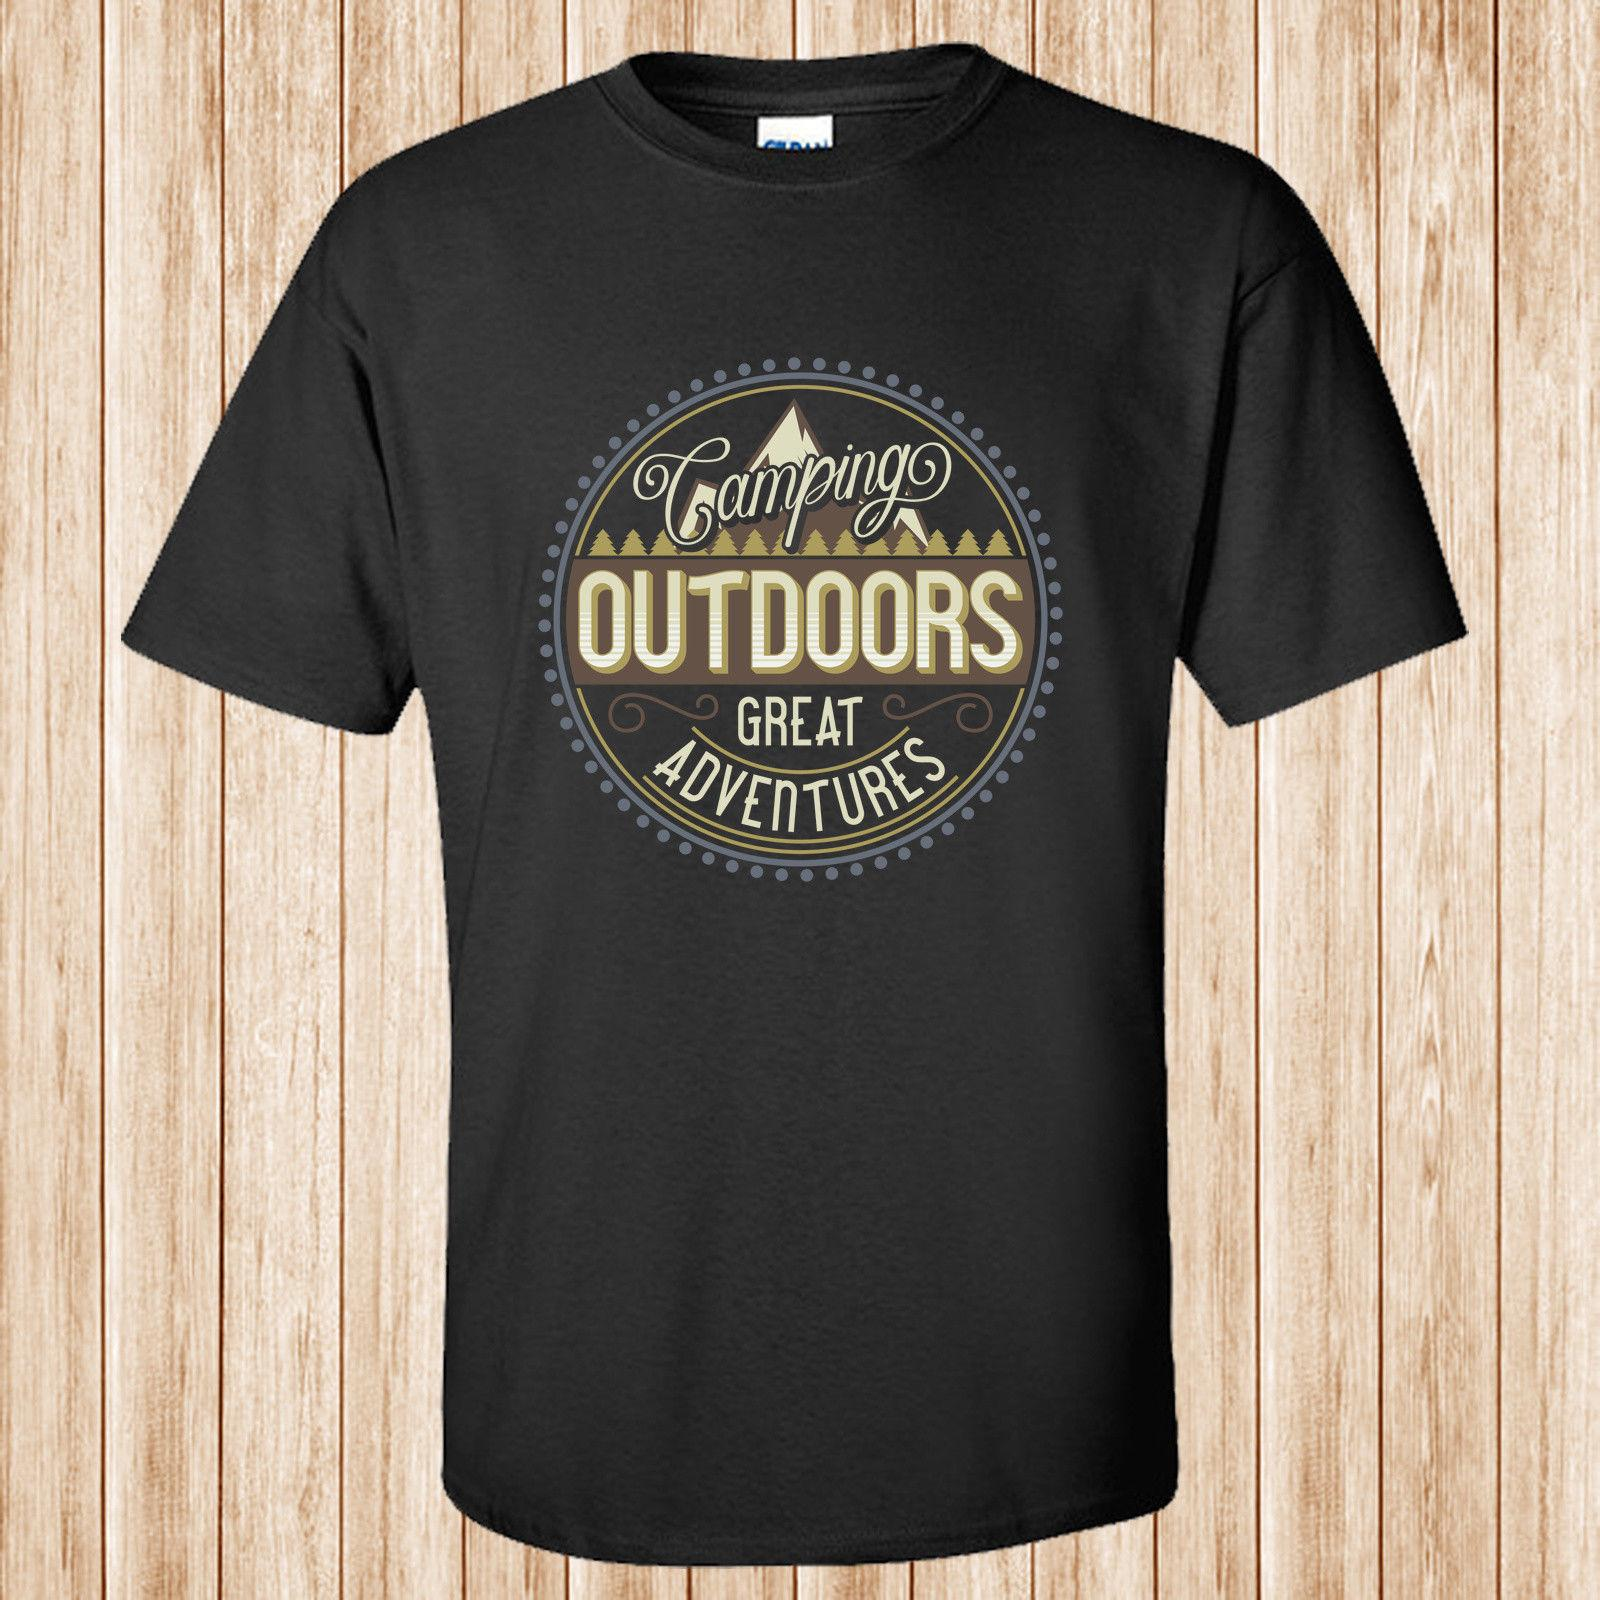 77e5d746d Camping Outdoors T Shirt Funny Unisex Casual Funny Clever T Shirts Best  Sites For T Shirts From Cheznobody, $12.96| DHgate.Com